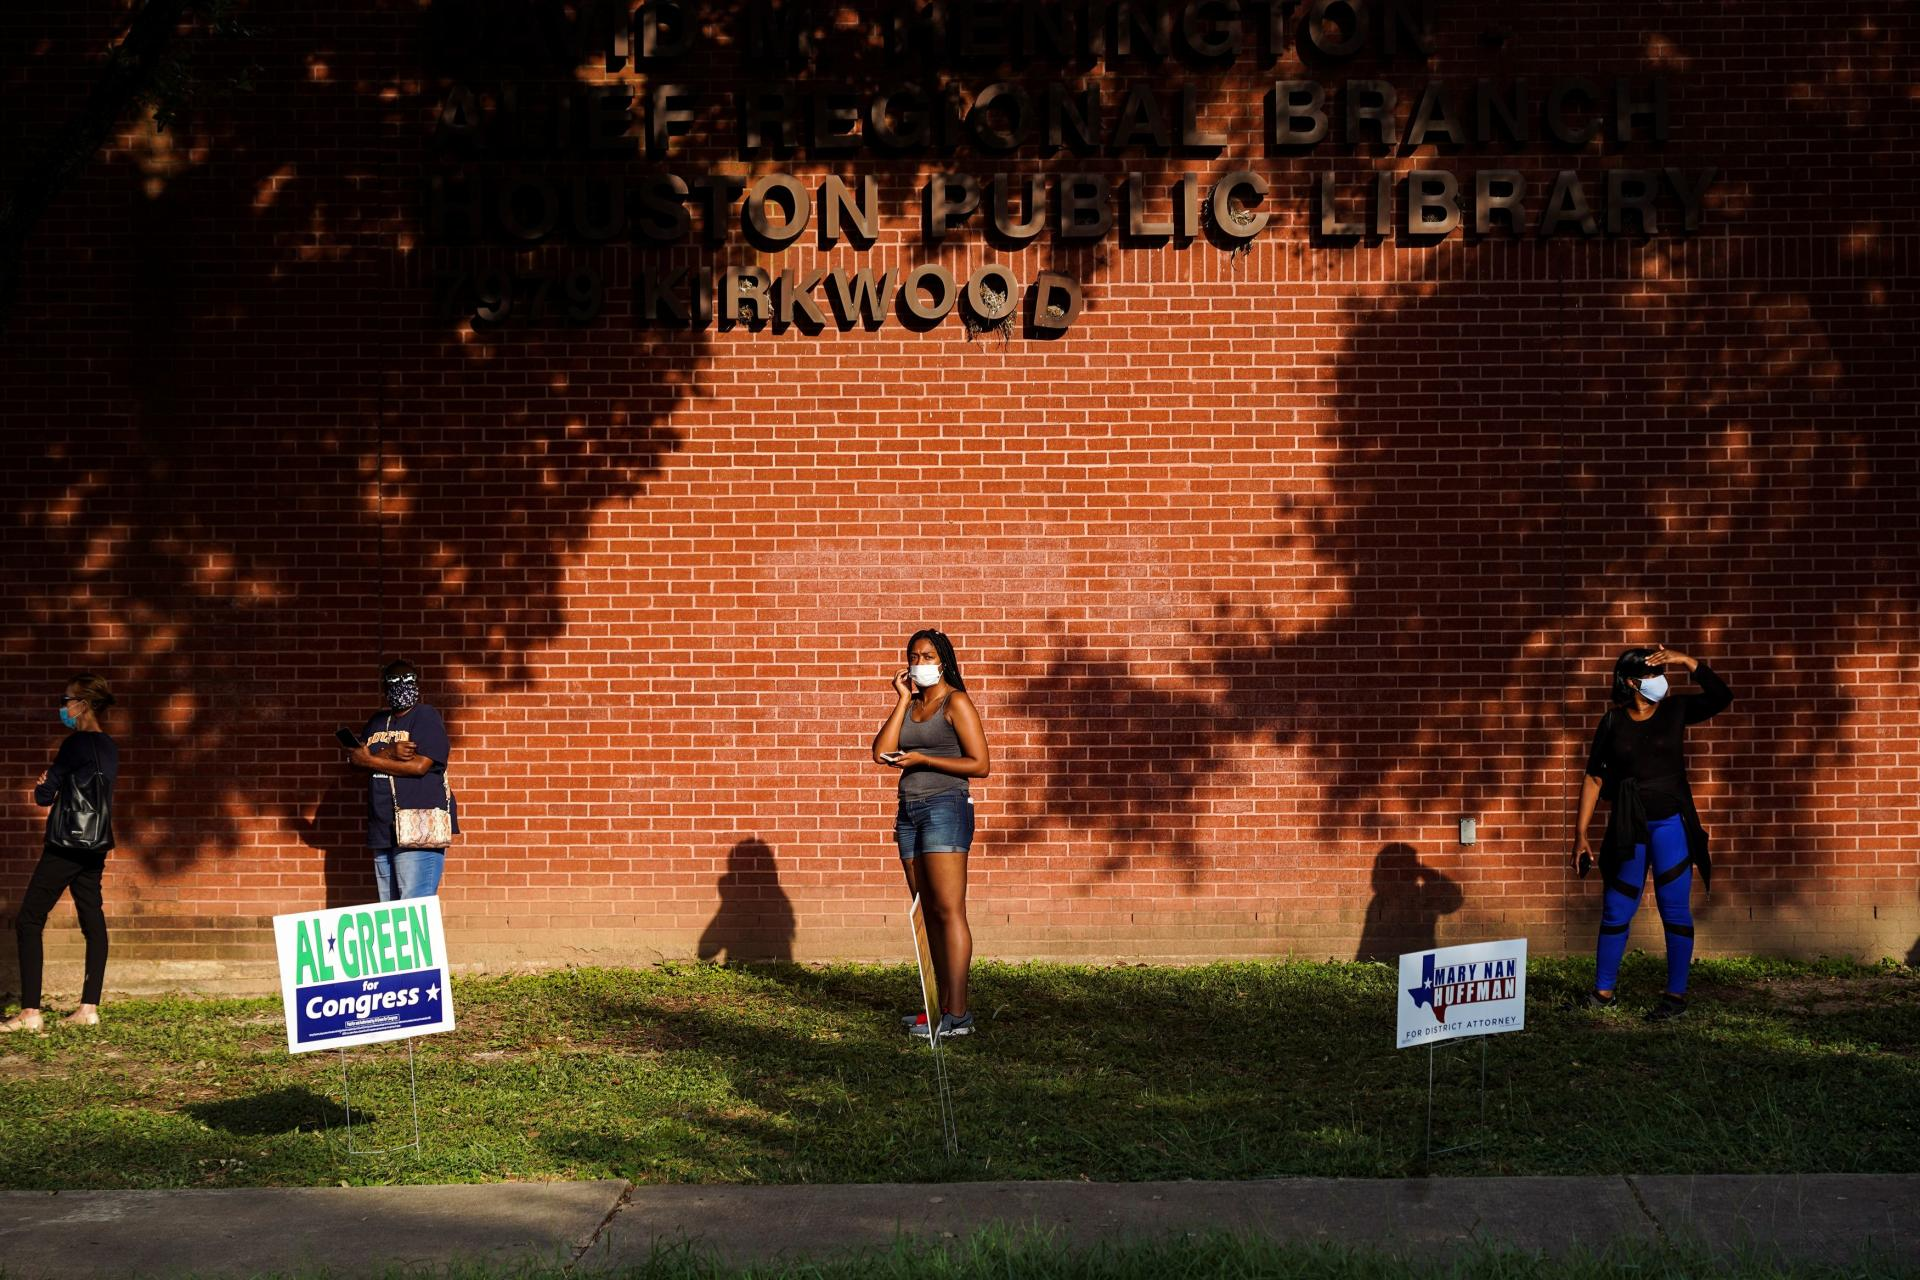 Texas is a traditionally conservative state.  Since 1980, its inhabitants have voted for the Republican presidential candidate.  This year, however, polls show Democrat Joe Biden is in a position to challenge Donald Trump for victory.  On October 13, voters lined up to vote in Houston.